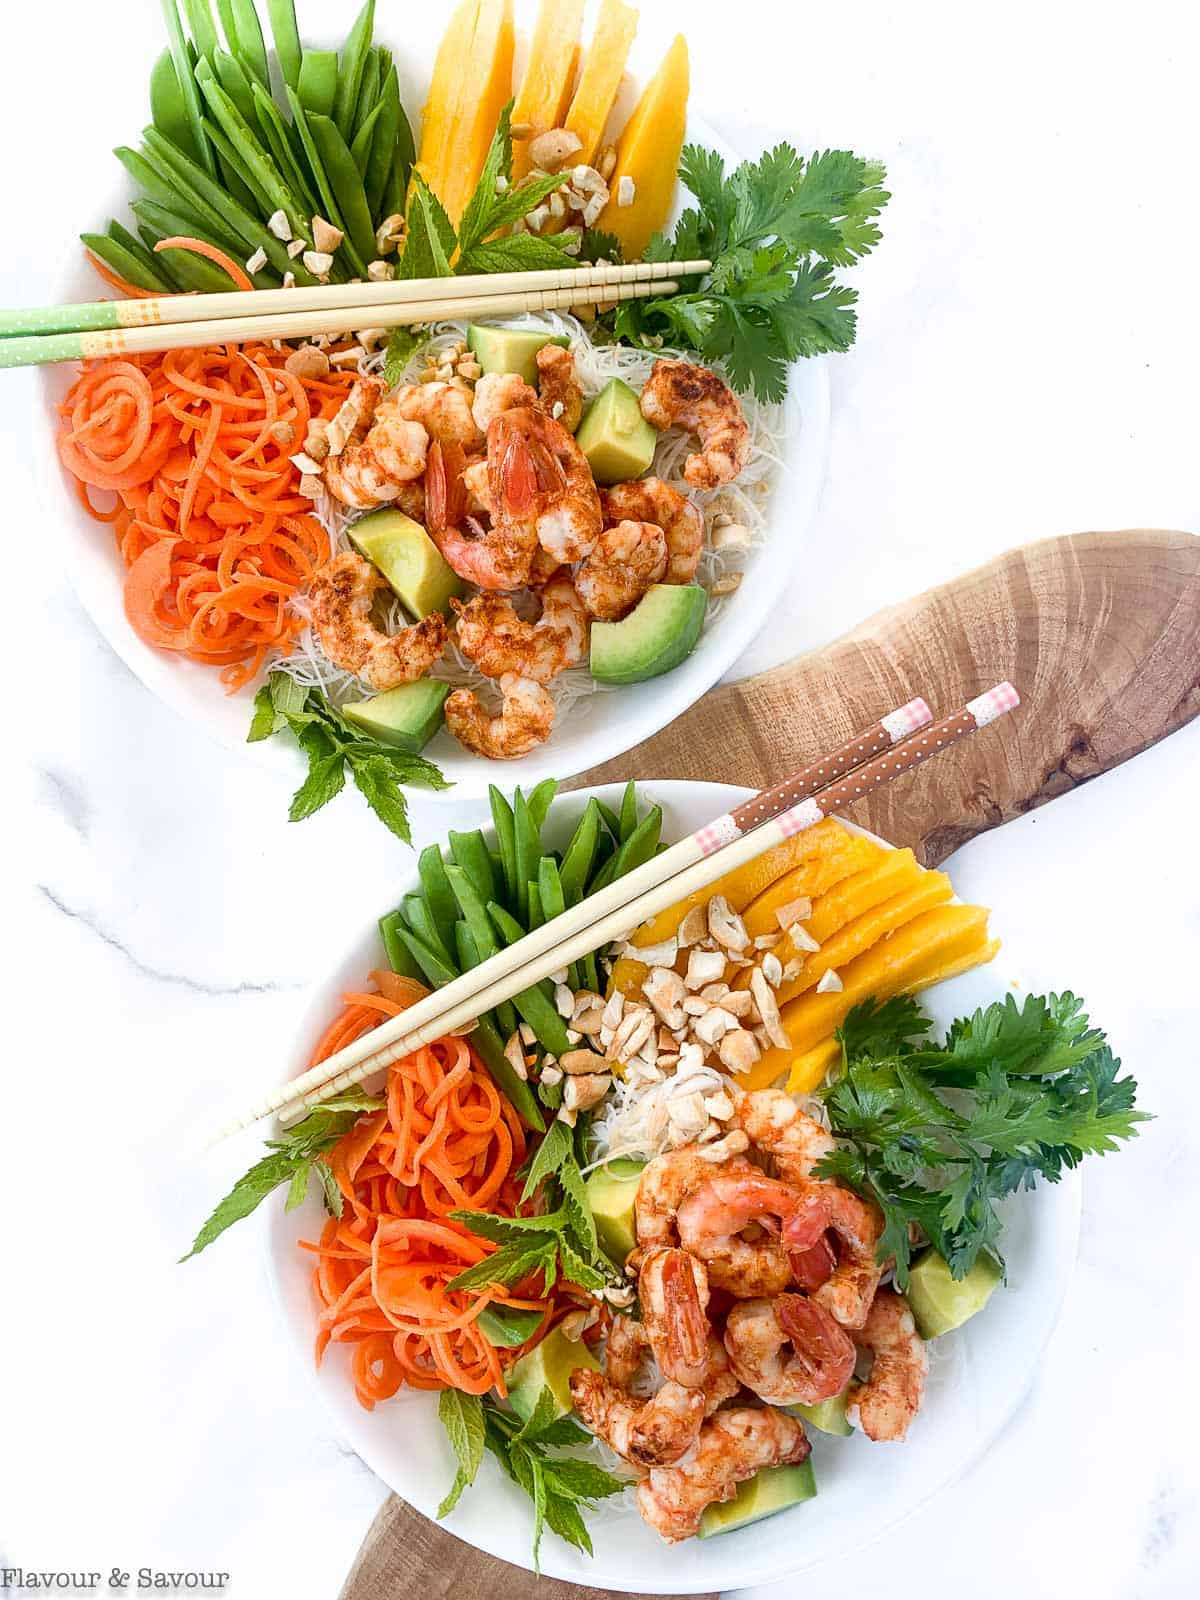 Two Vietnamese Prawn (Shrimp) Noodle Bowls on a board with chopsticks